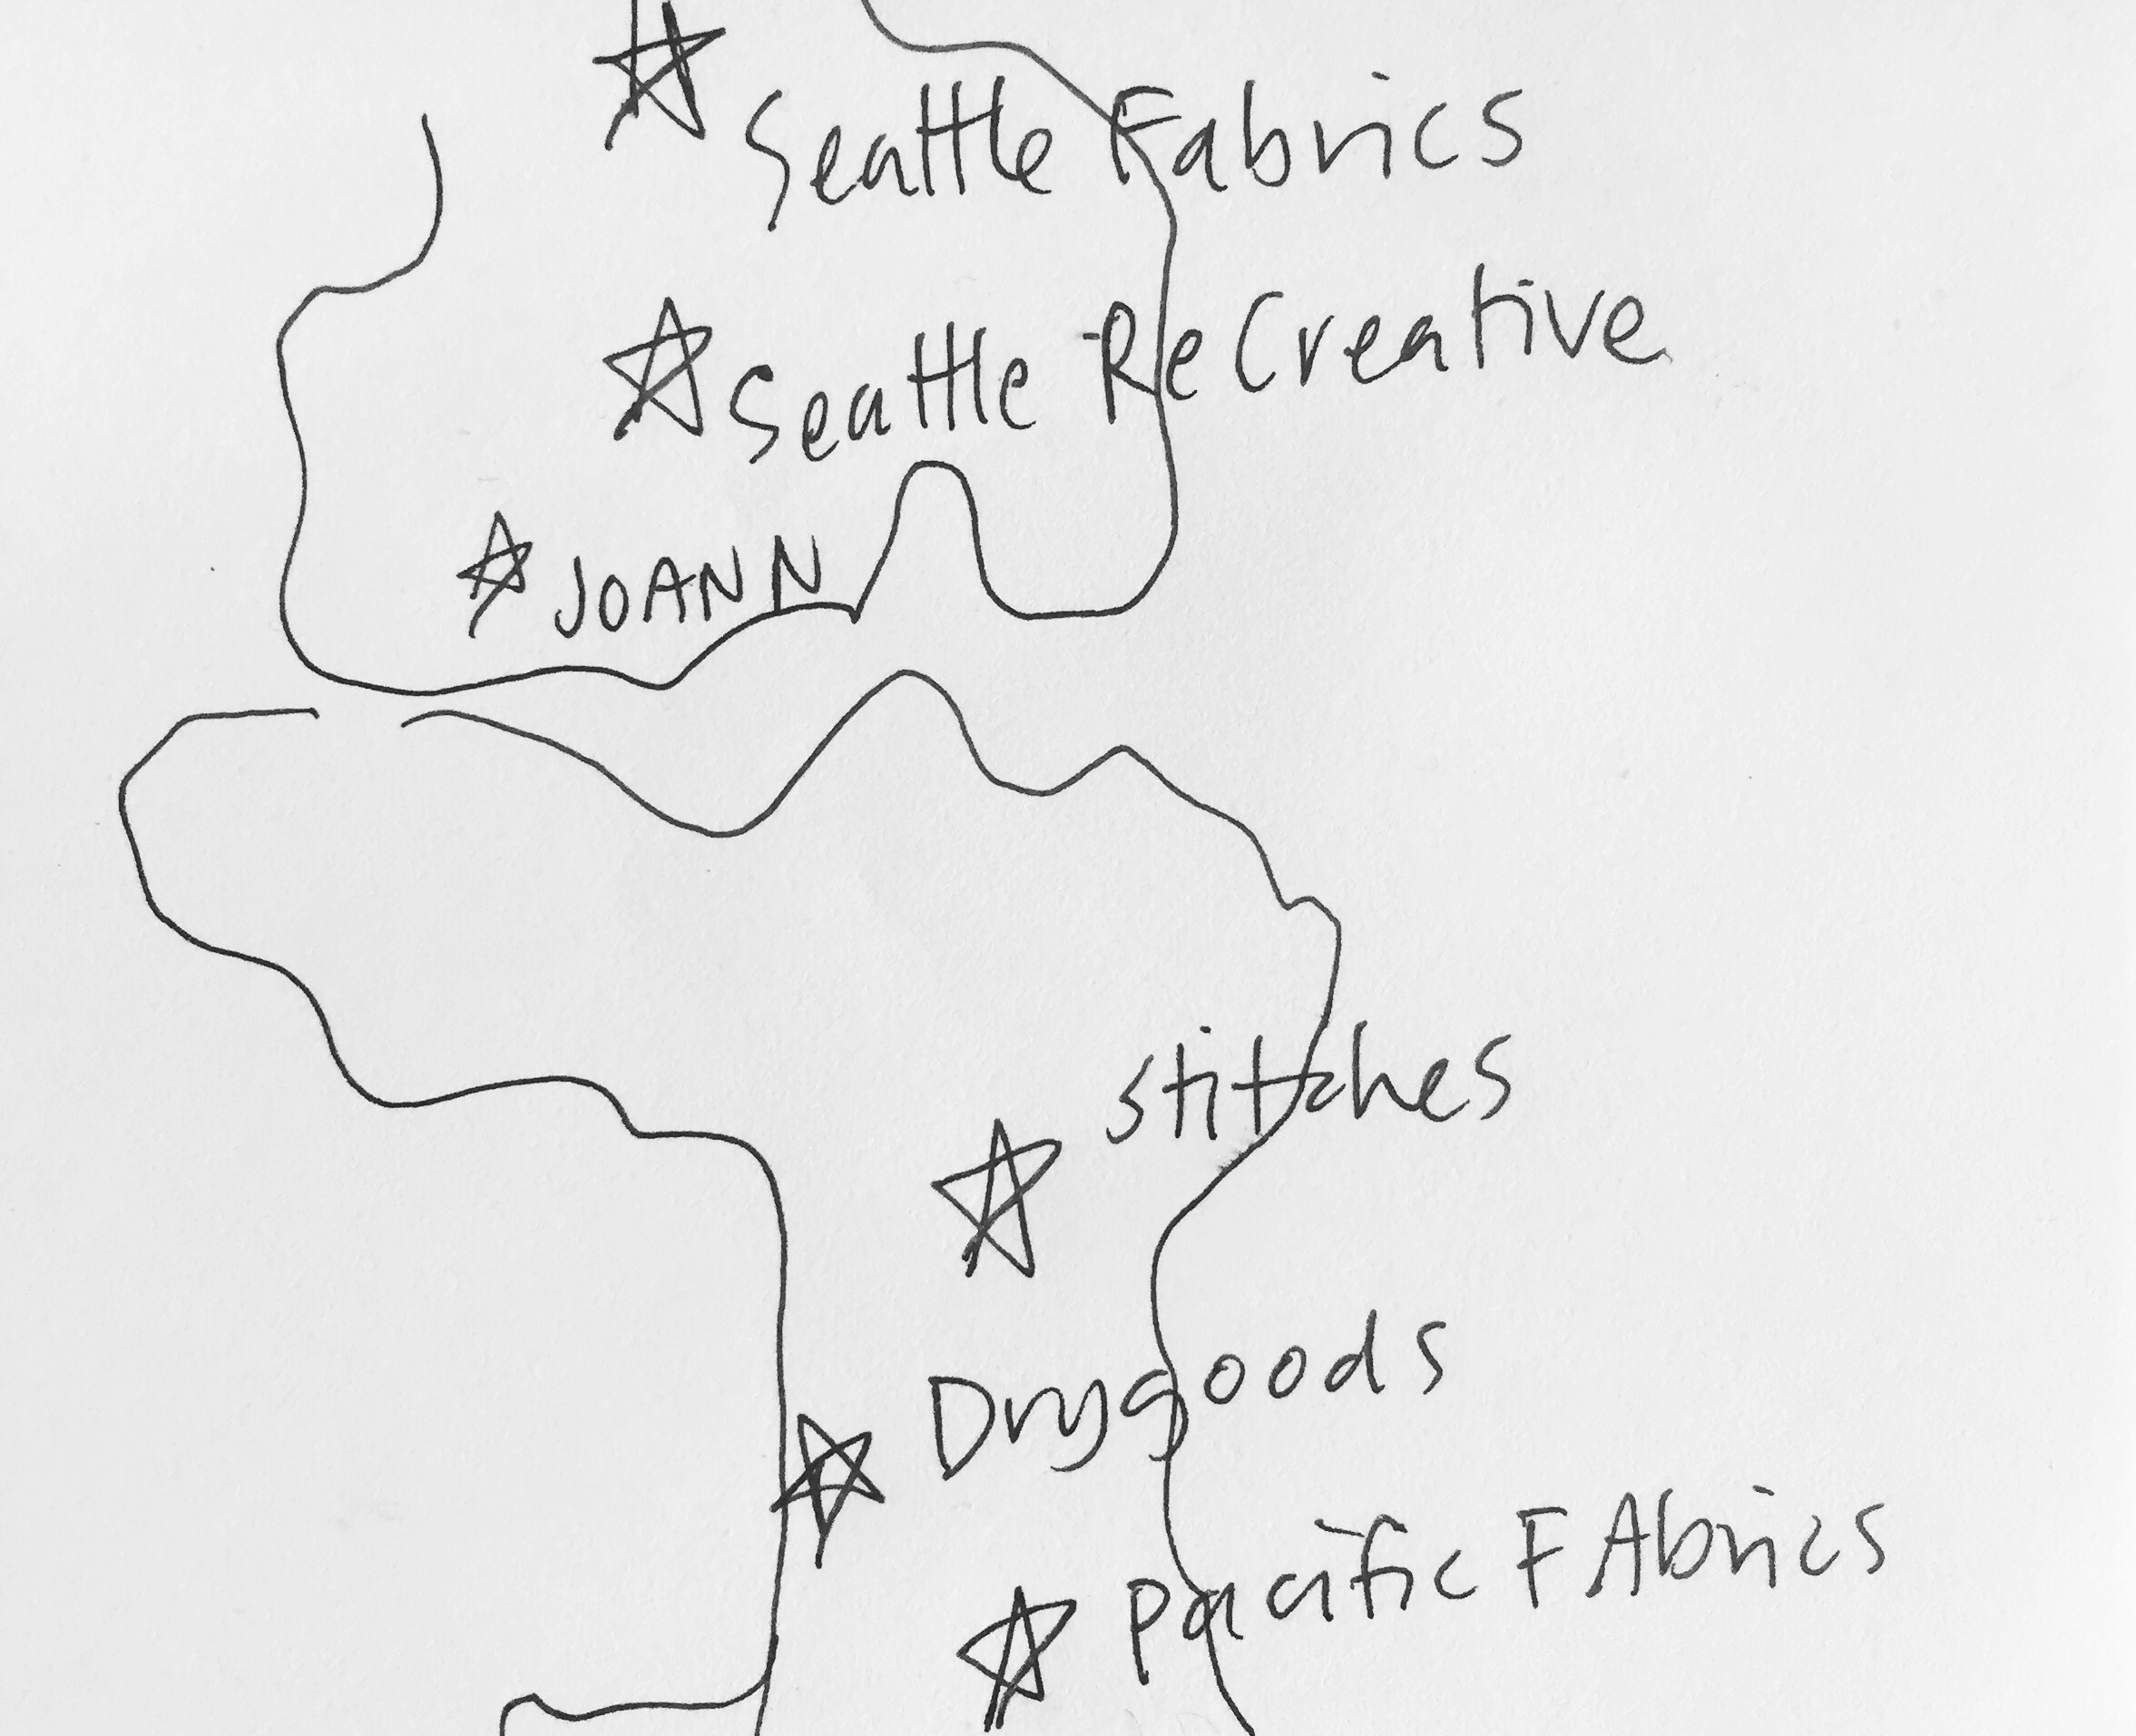 seattle sewing stores map sketch